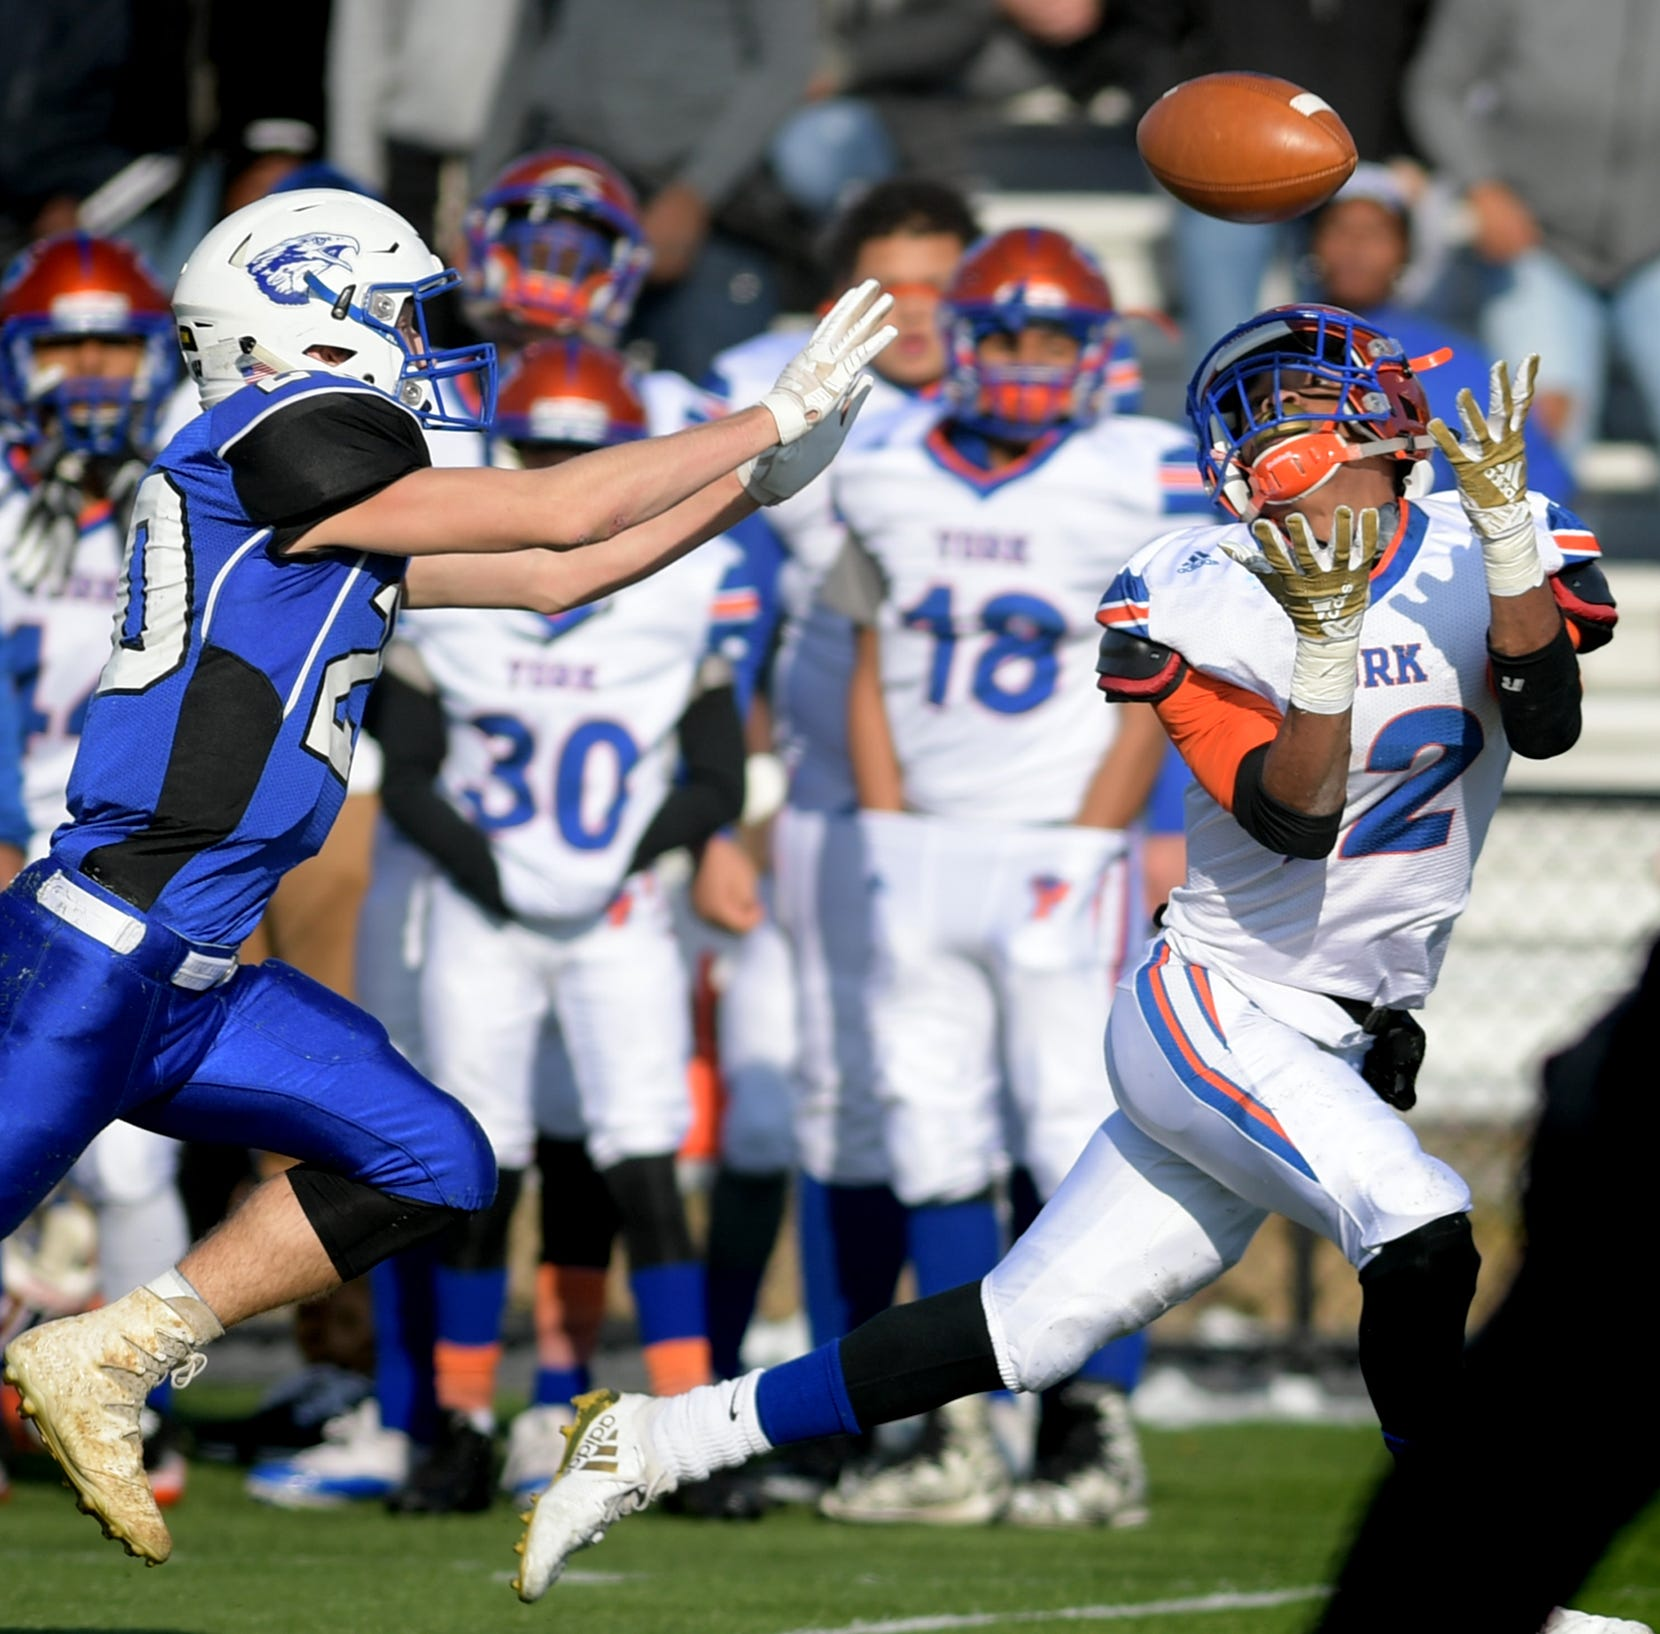 Cocalico runs over York High for District 3 Class 5-A playoff victory